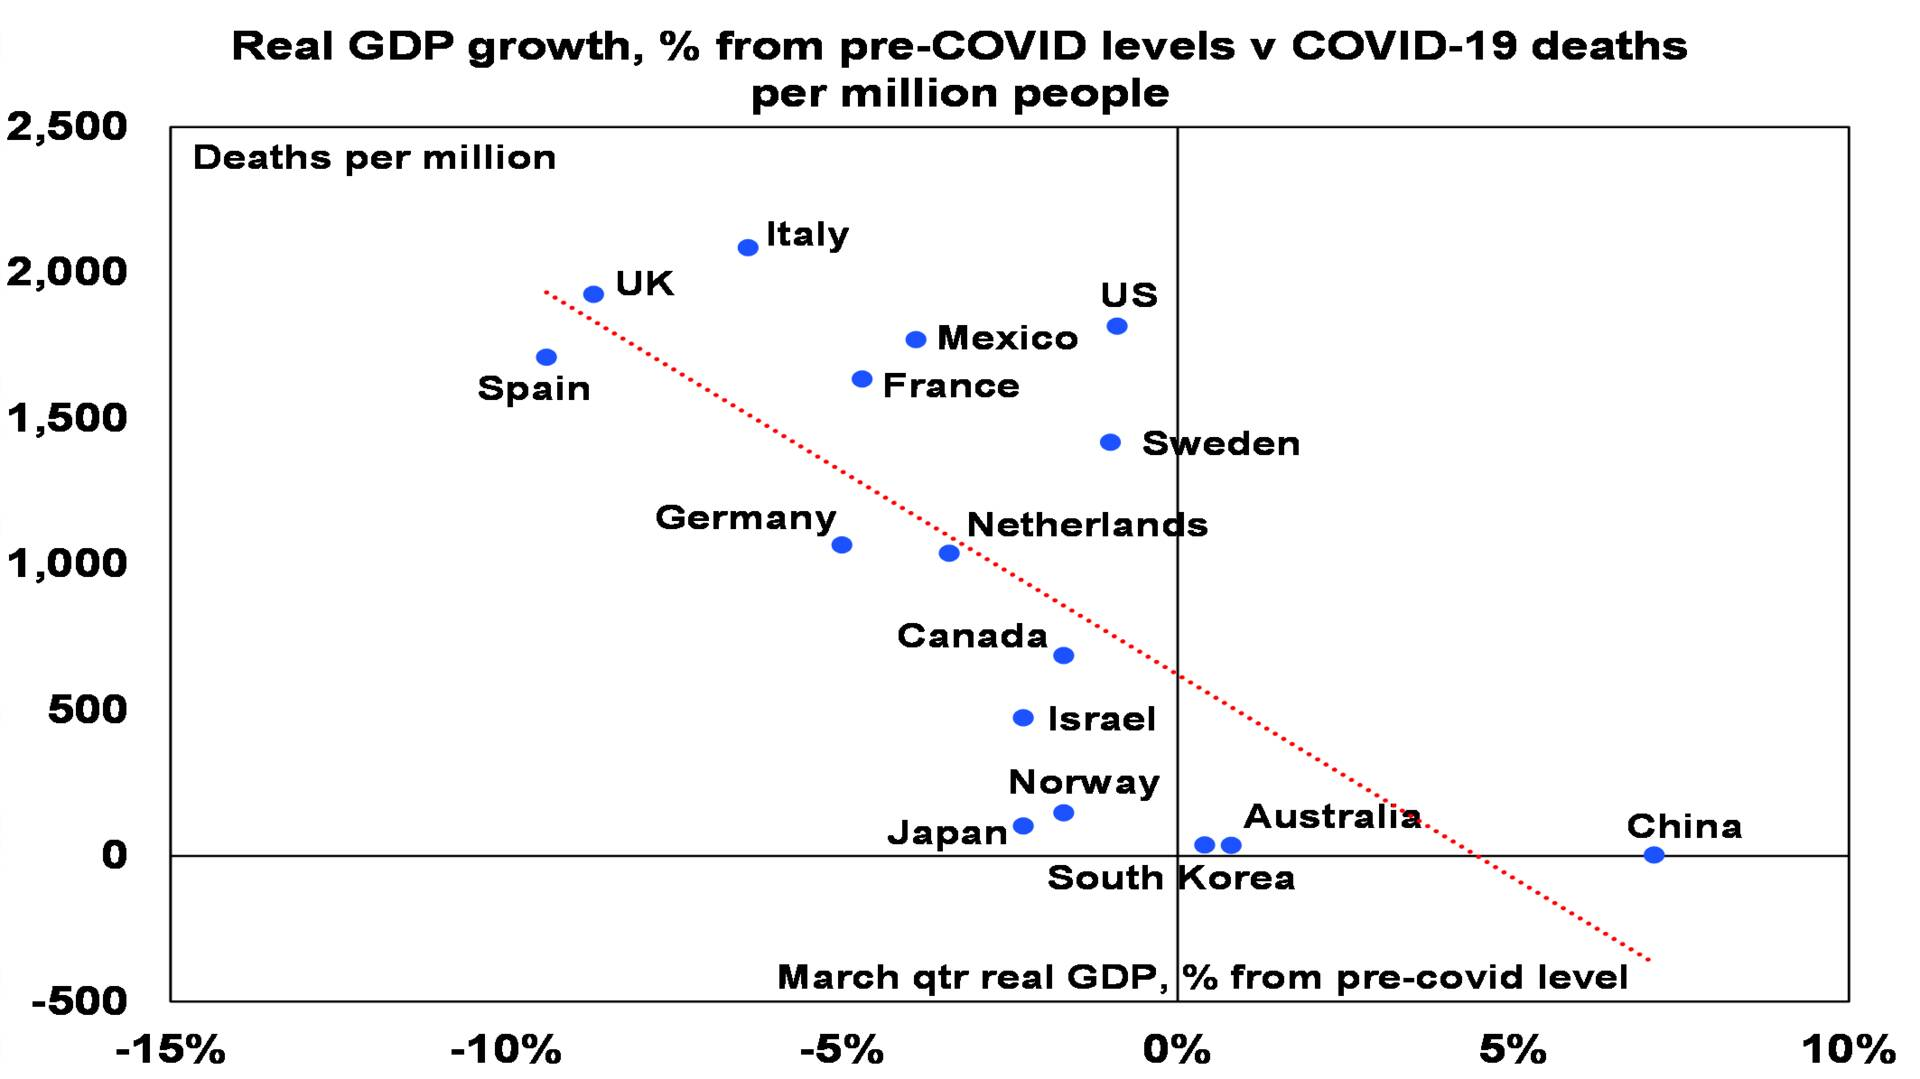 Source: ourworldindata, OECD, ABS, AMP Capital